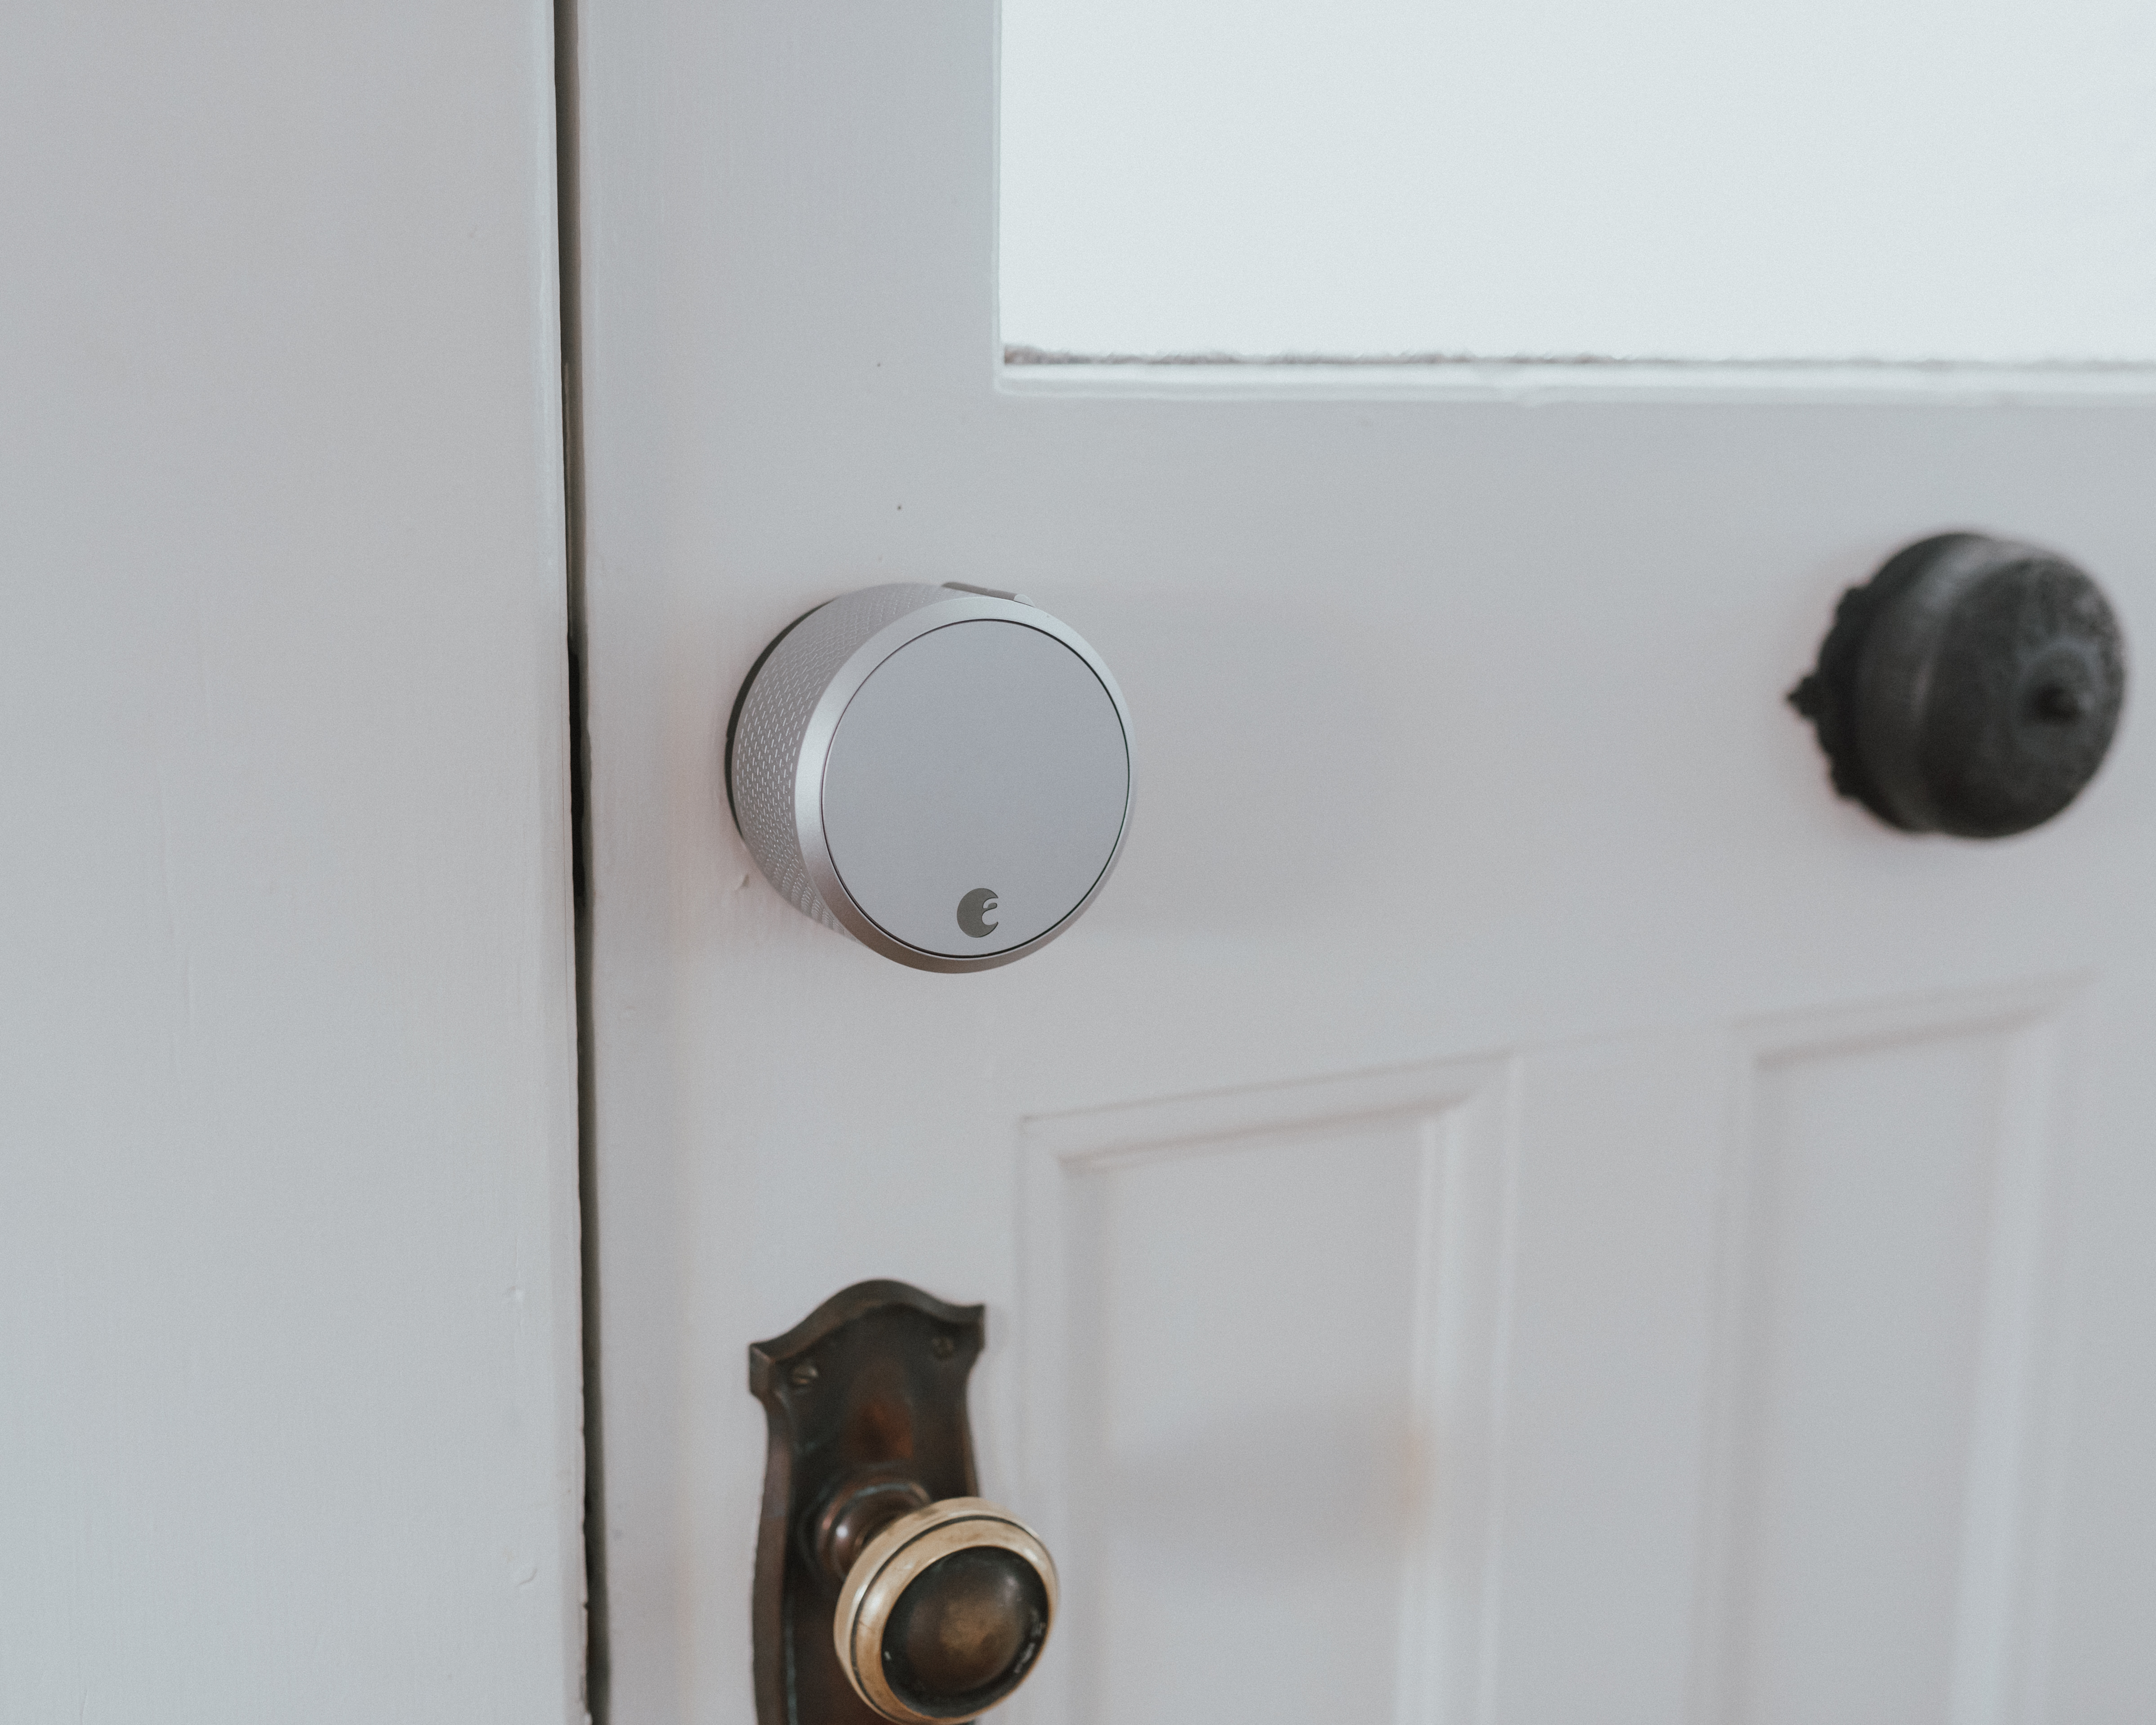 The Wild Decoeli's | The Ease Of Keyless for Families | Our Keyless Smart lock for our front door| August smart lock pro